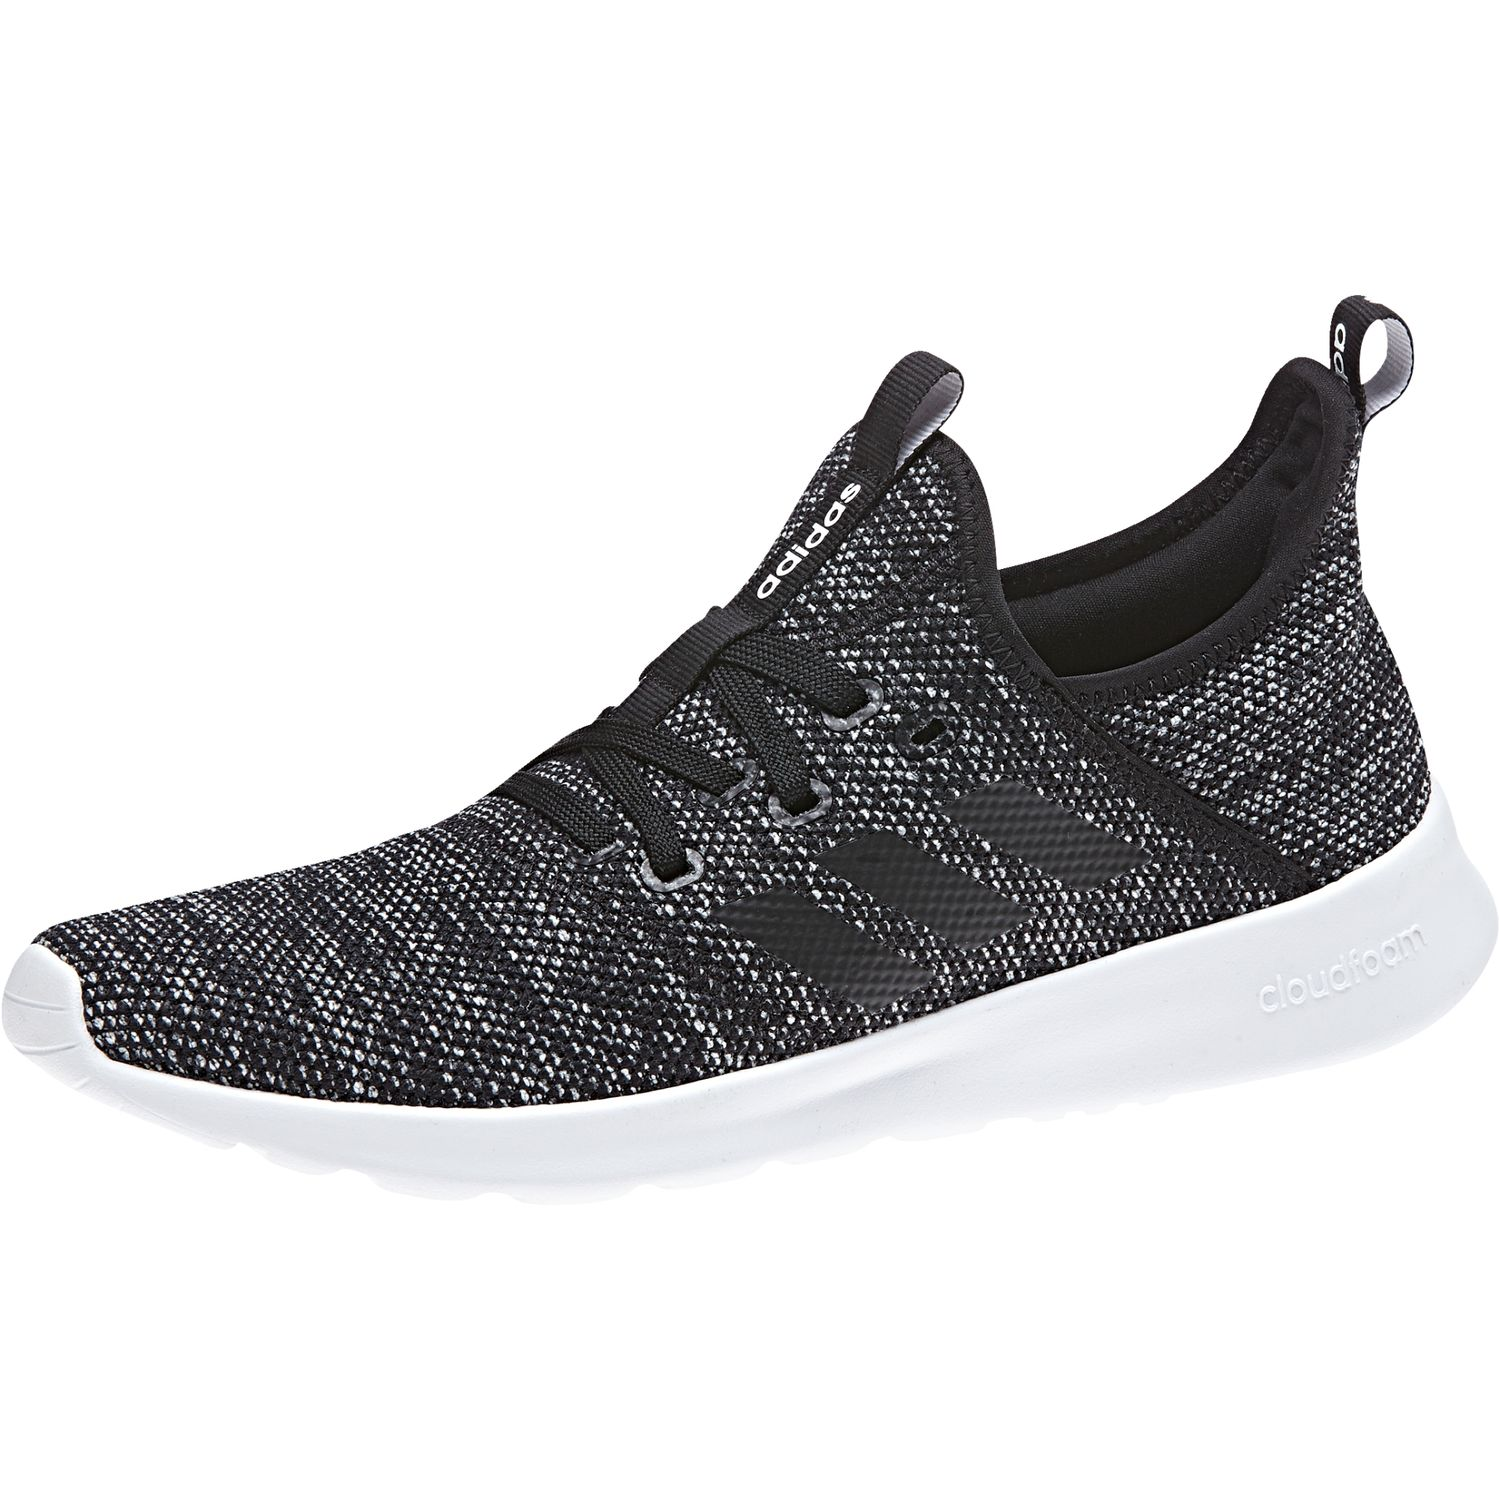 Details about Adidas Ladies Cloudfoam Pure w Sneakers Trainers Fitness  Shoes db0694 Core Black